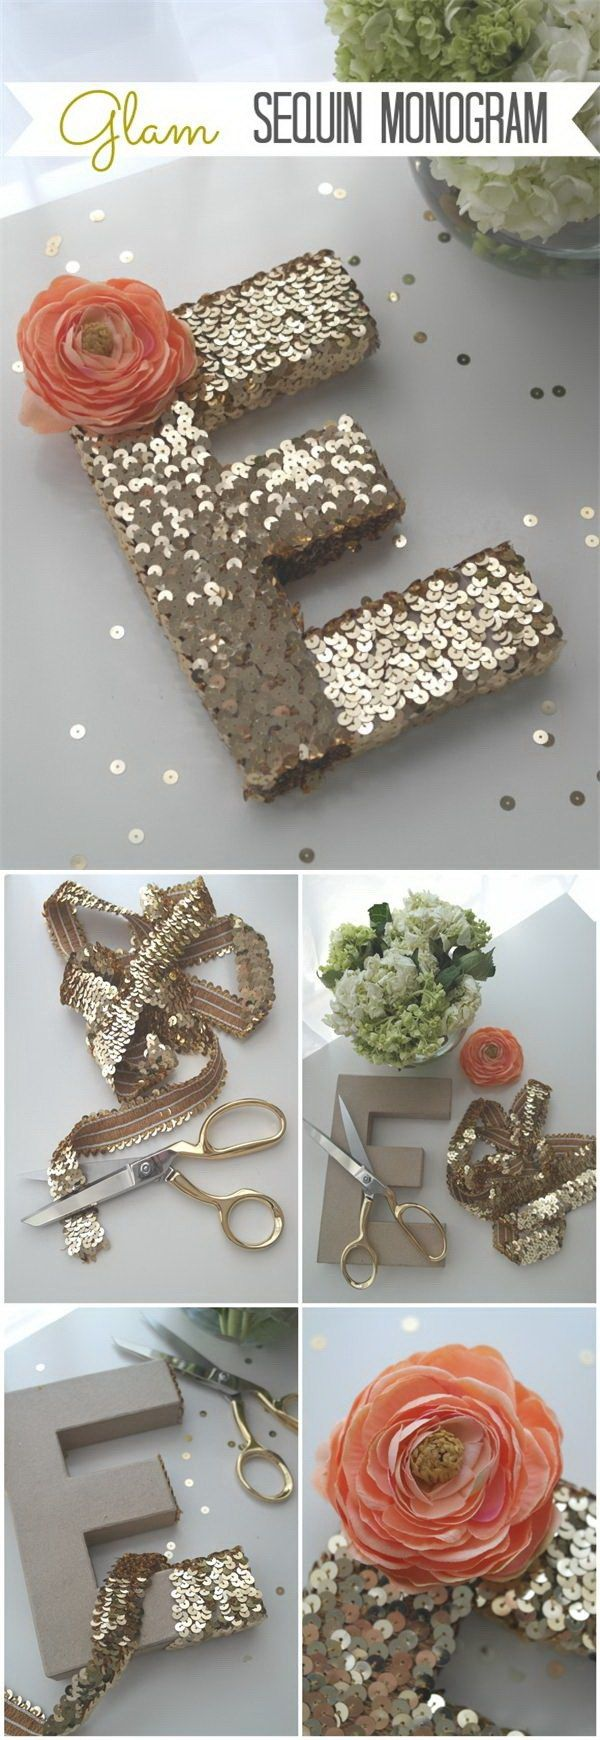 DIY Sequin Monogram Letter. Decorate cardboard letters with gold sequins and a piece of flower! This will adorn a wall, table or shelf in any room in the home!